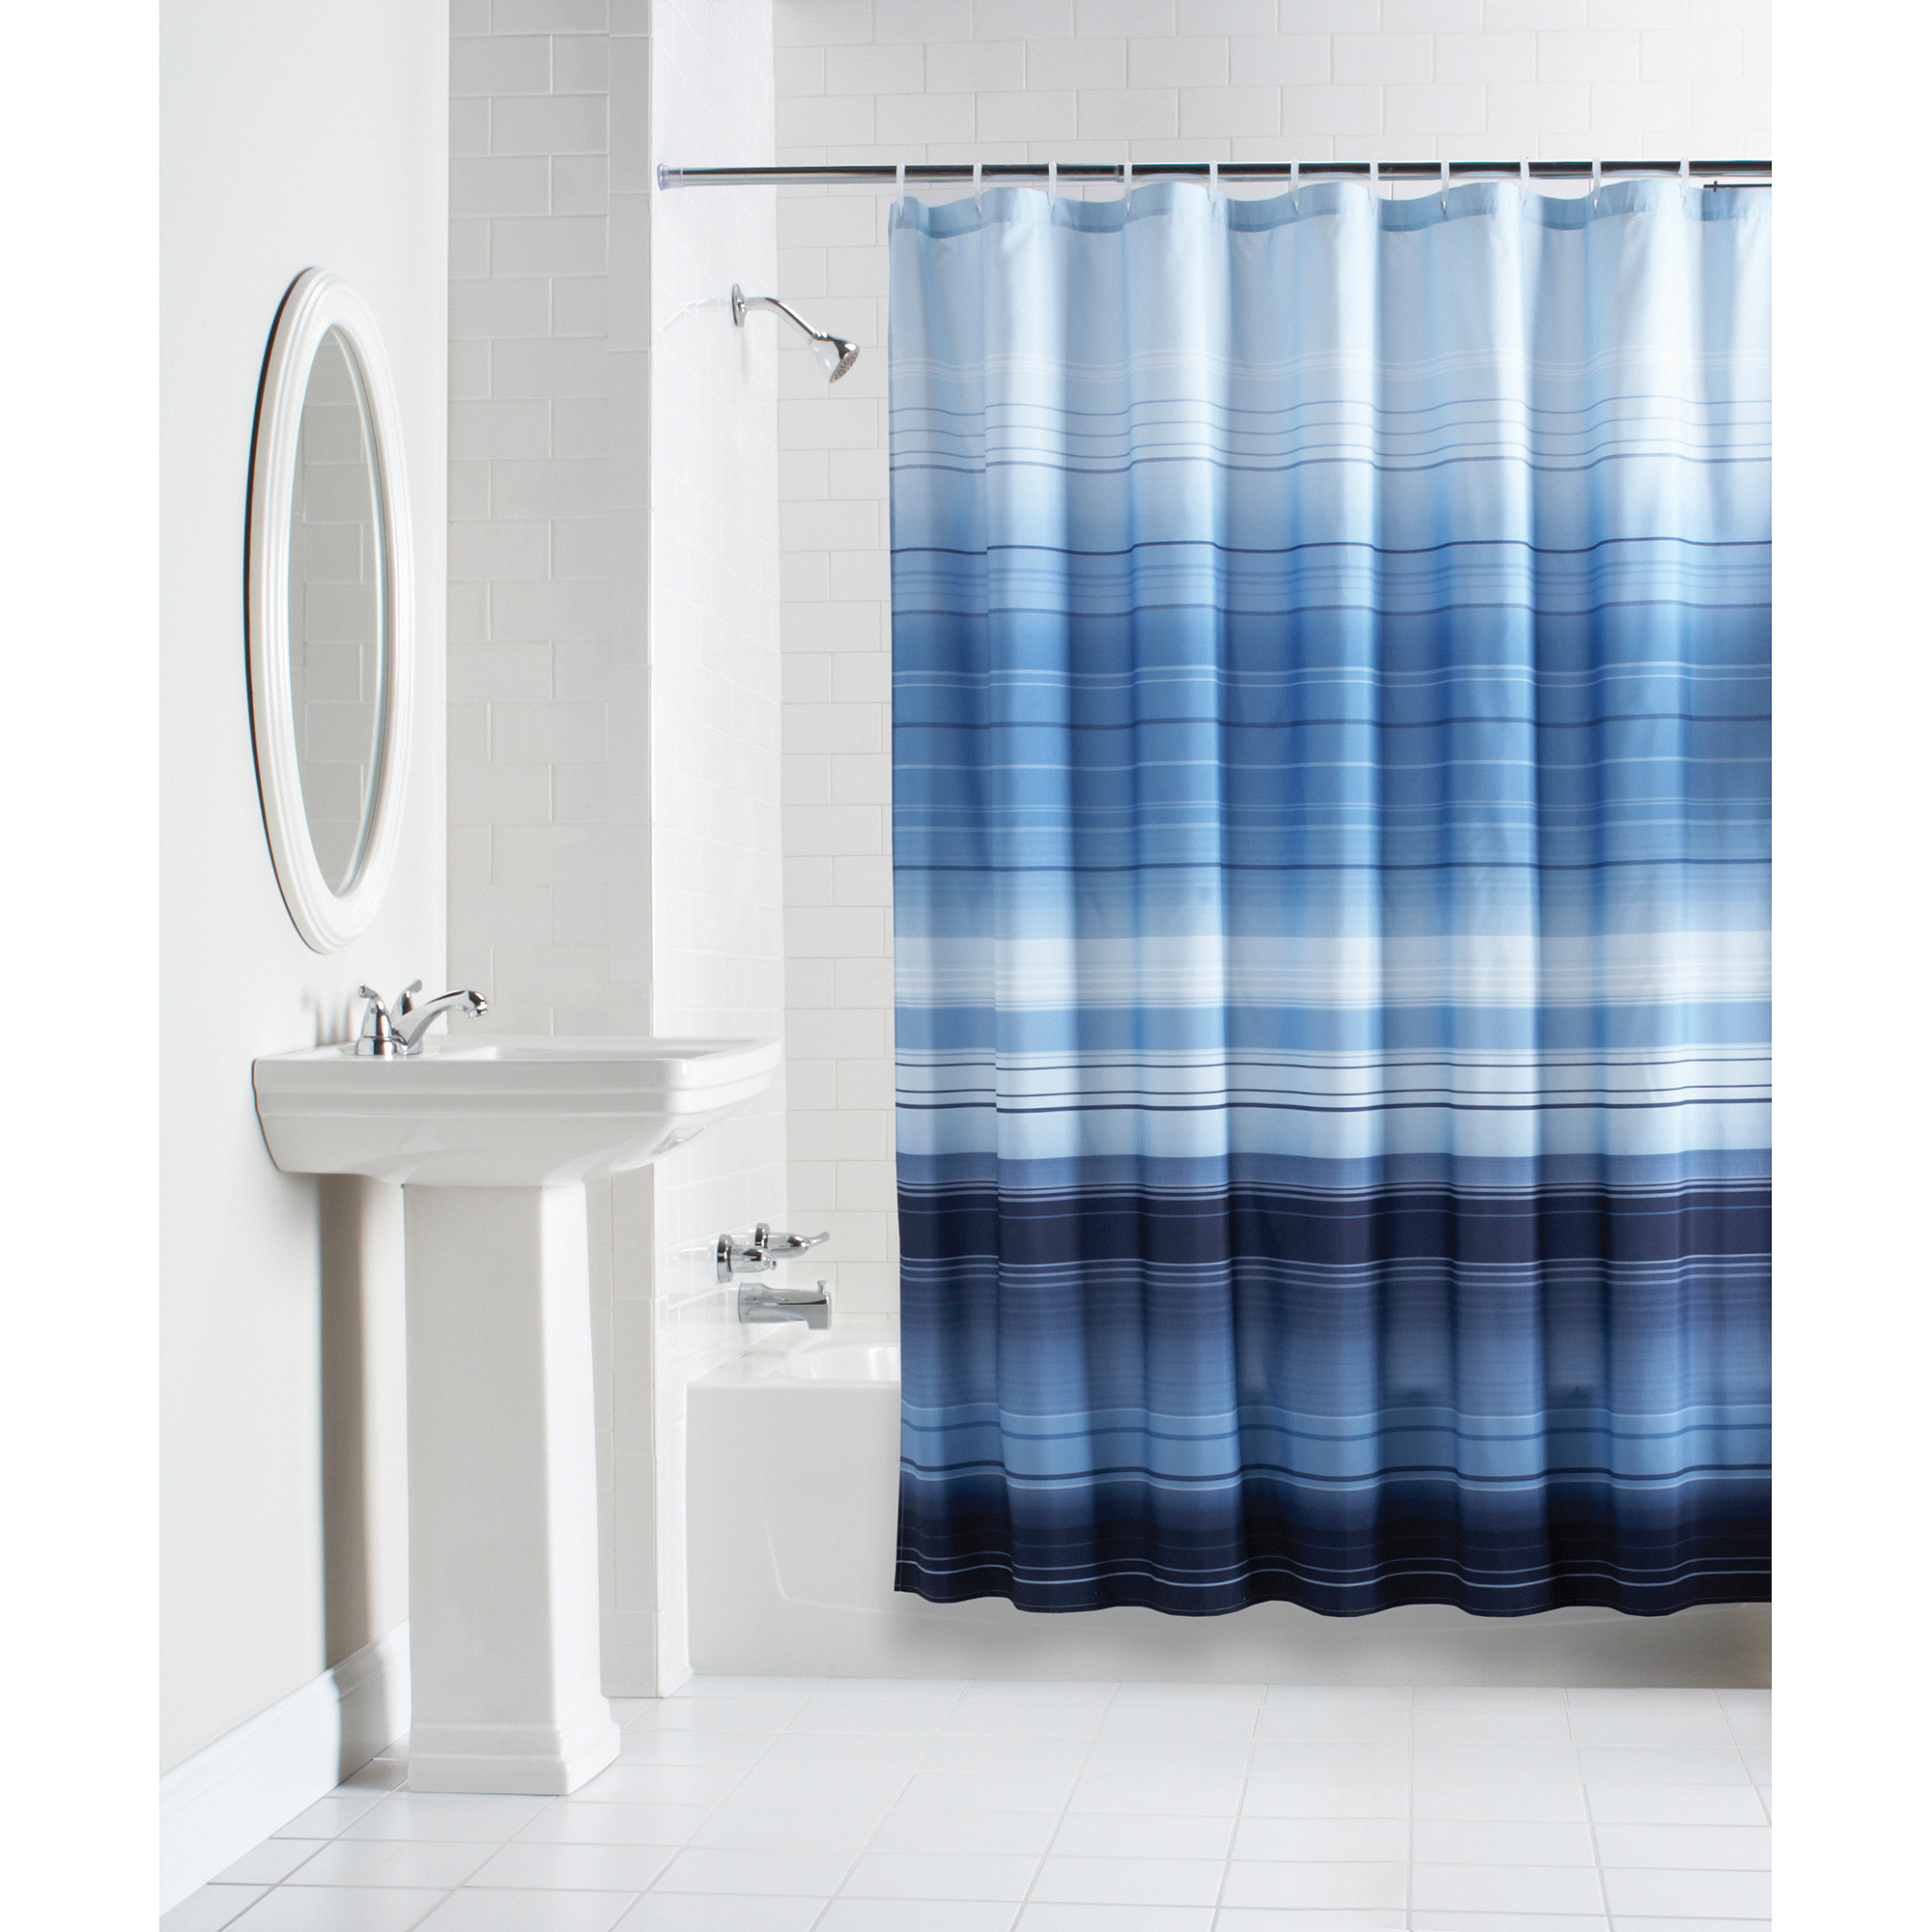 window curtains shower curtain bathroom rings sets fabric your walmart liner ideas for and cute christmas matching decor